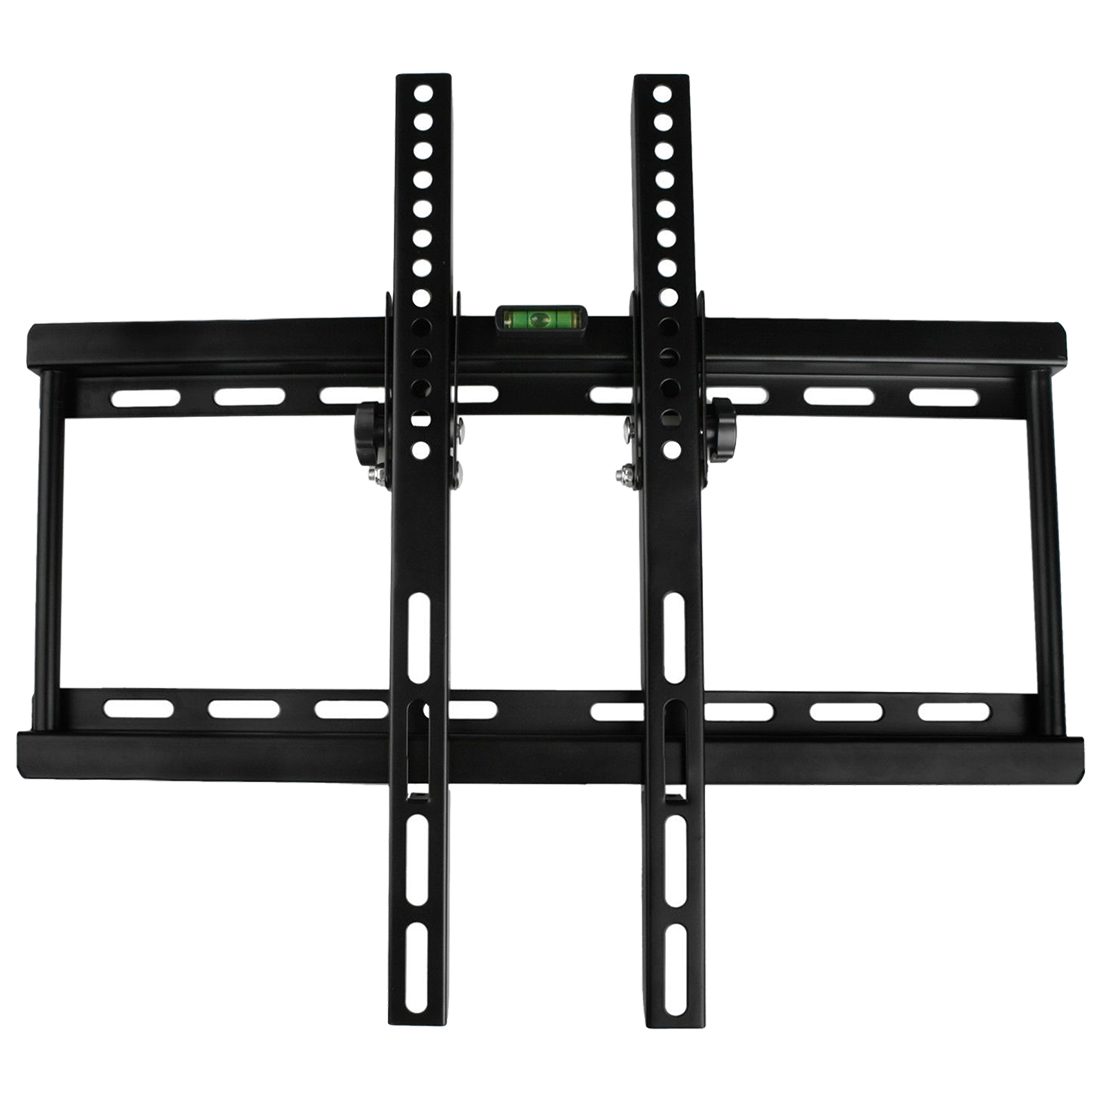 Bathroom Hardware Flat Slim Tv Wall Mount Bracket 23 28 30 32 40 42 48 50 55 Inch Led Lcd Plasma Bathroom Shelves